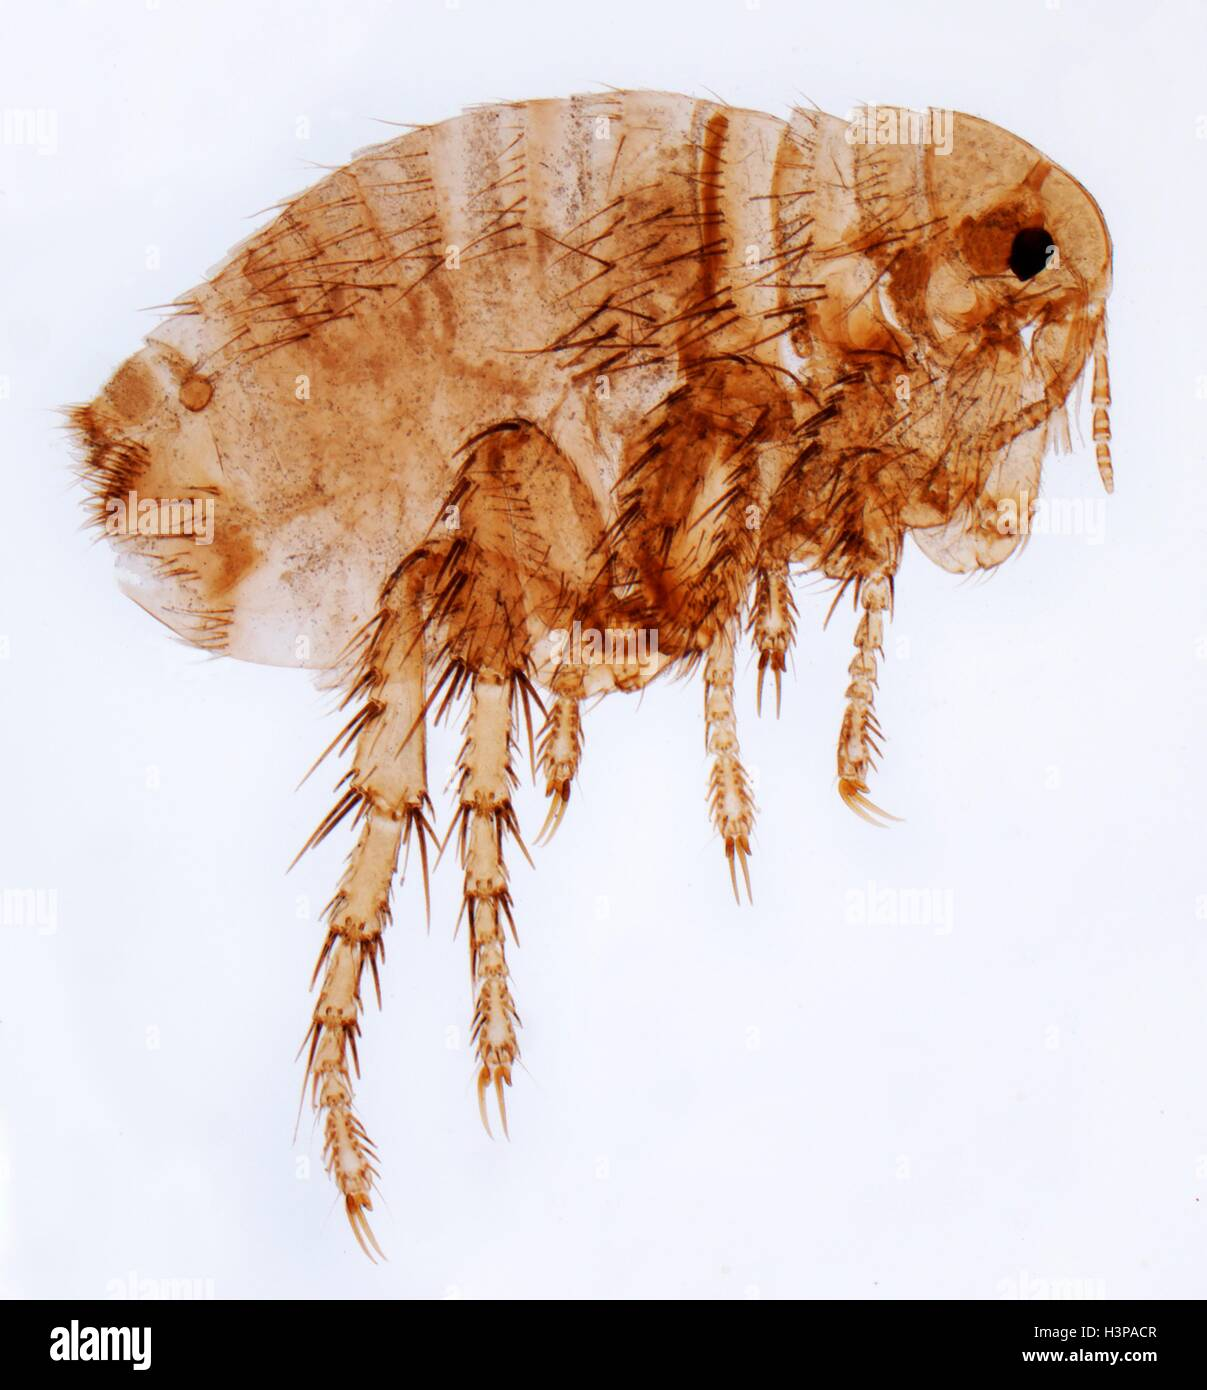 Human flea. Light micrograph (LM) of a female human flea (Pulex irratans). Fleas are wingless and flattened from - Stock Image